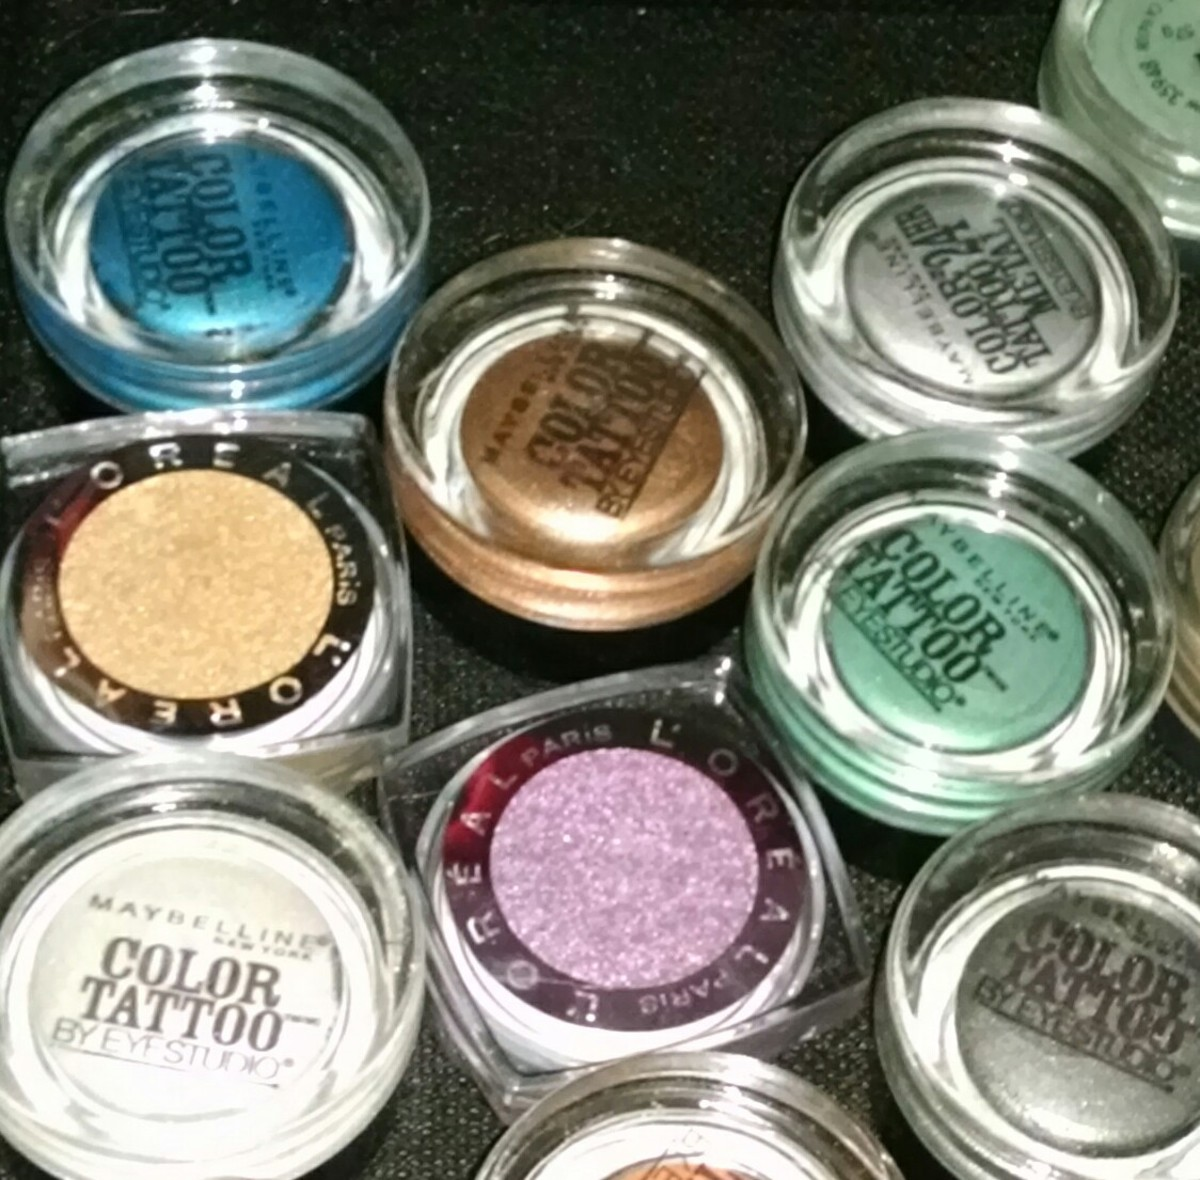 Maybelline Color Tattoo and L'Oreal Infallible Eye Shadow